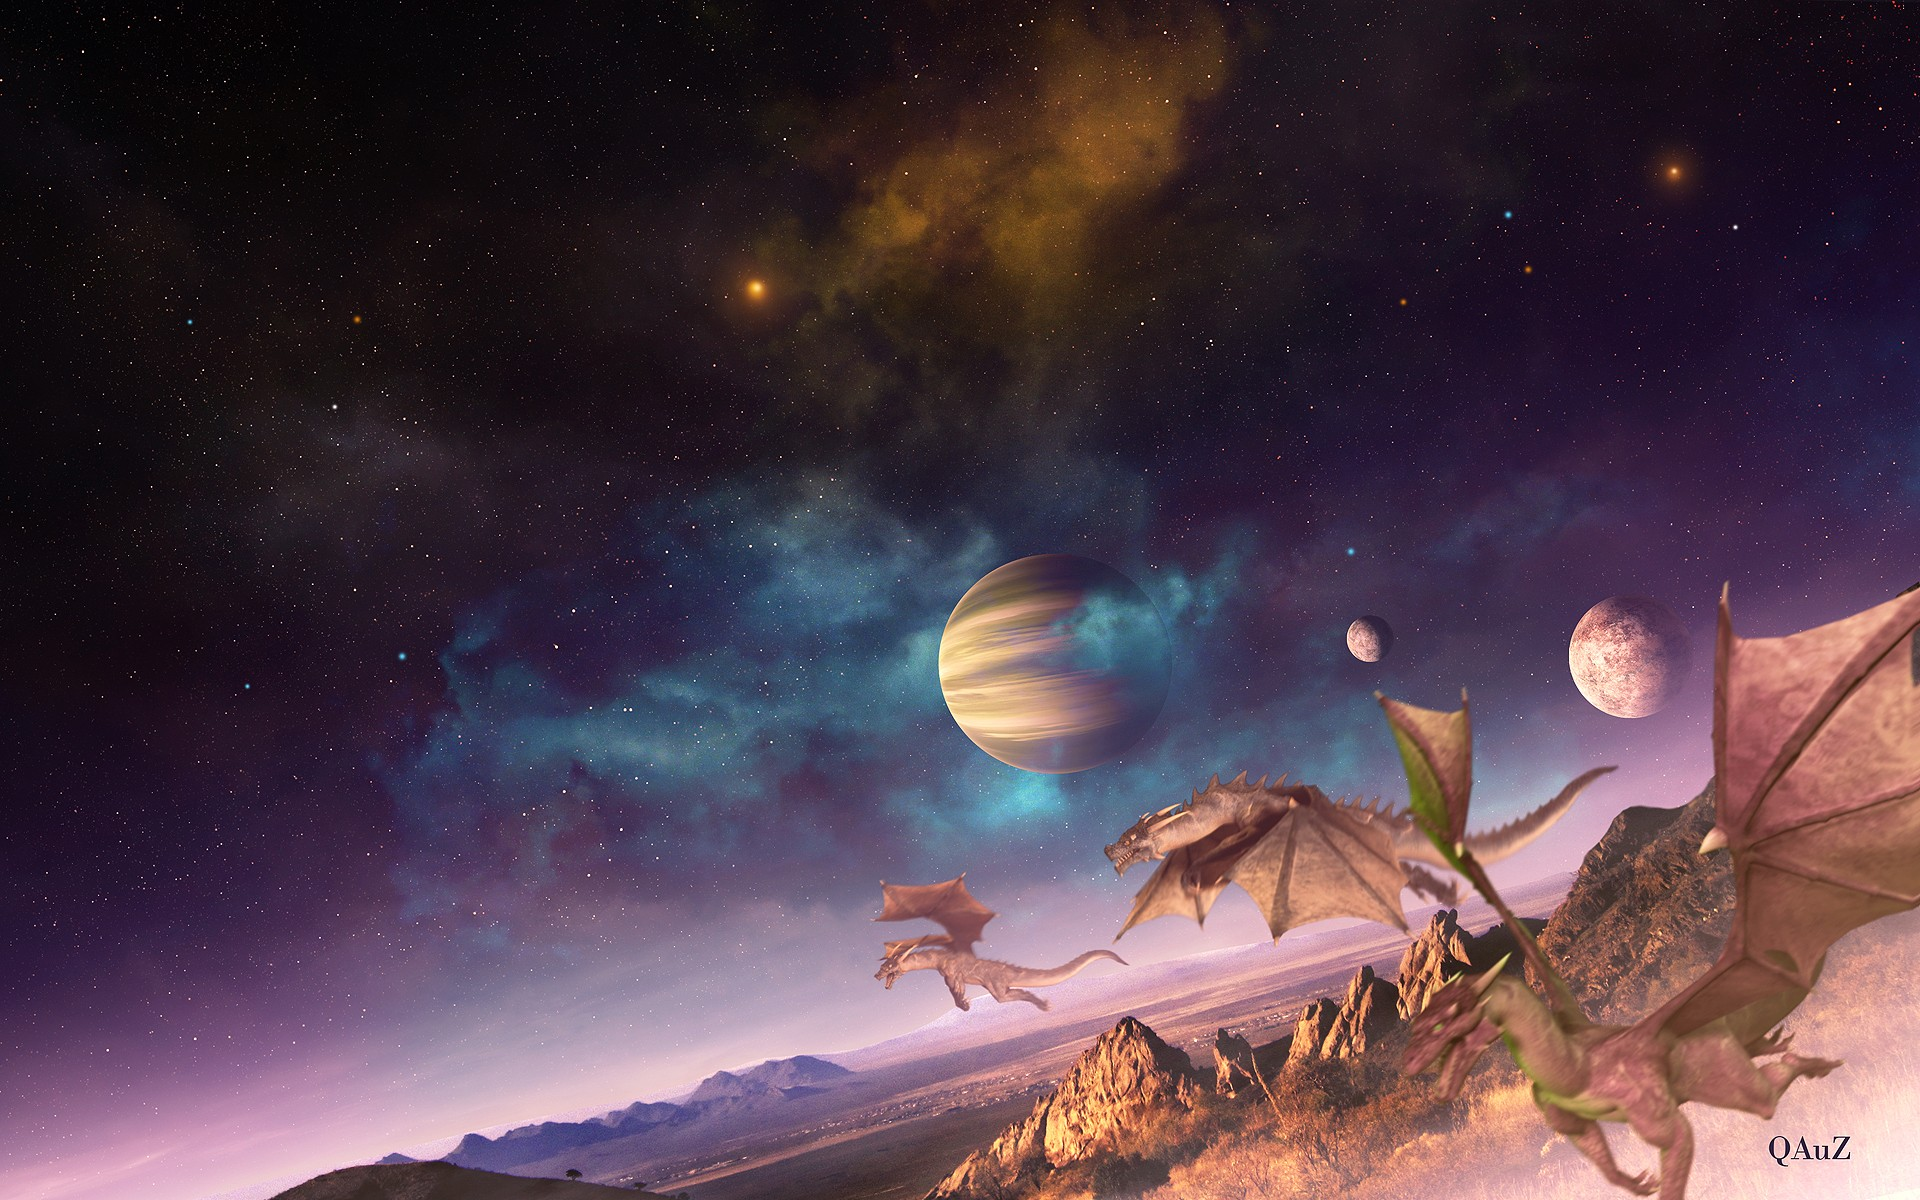 space 1080p wallpaper landscape - photo #41